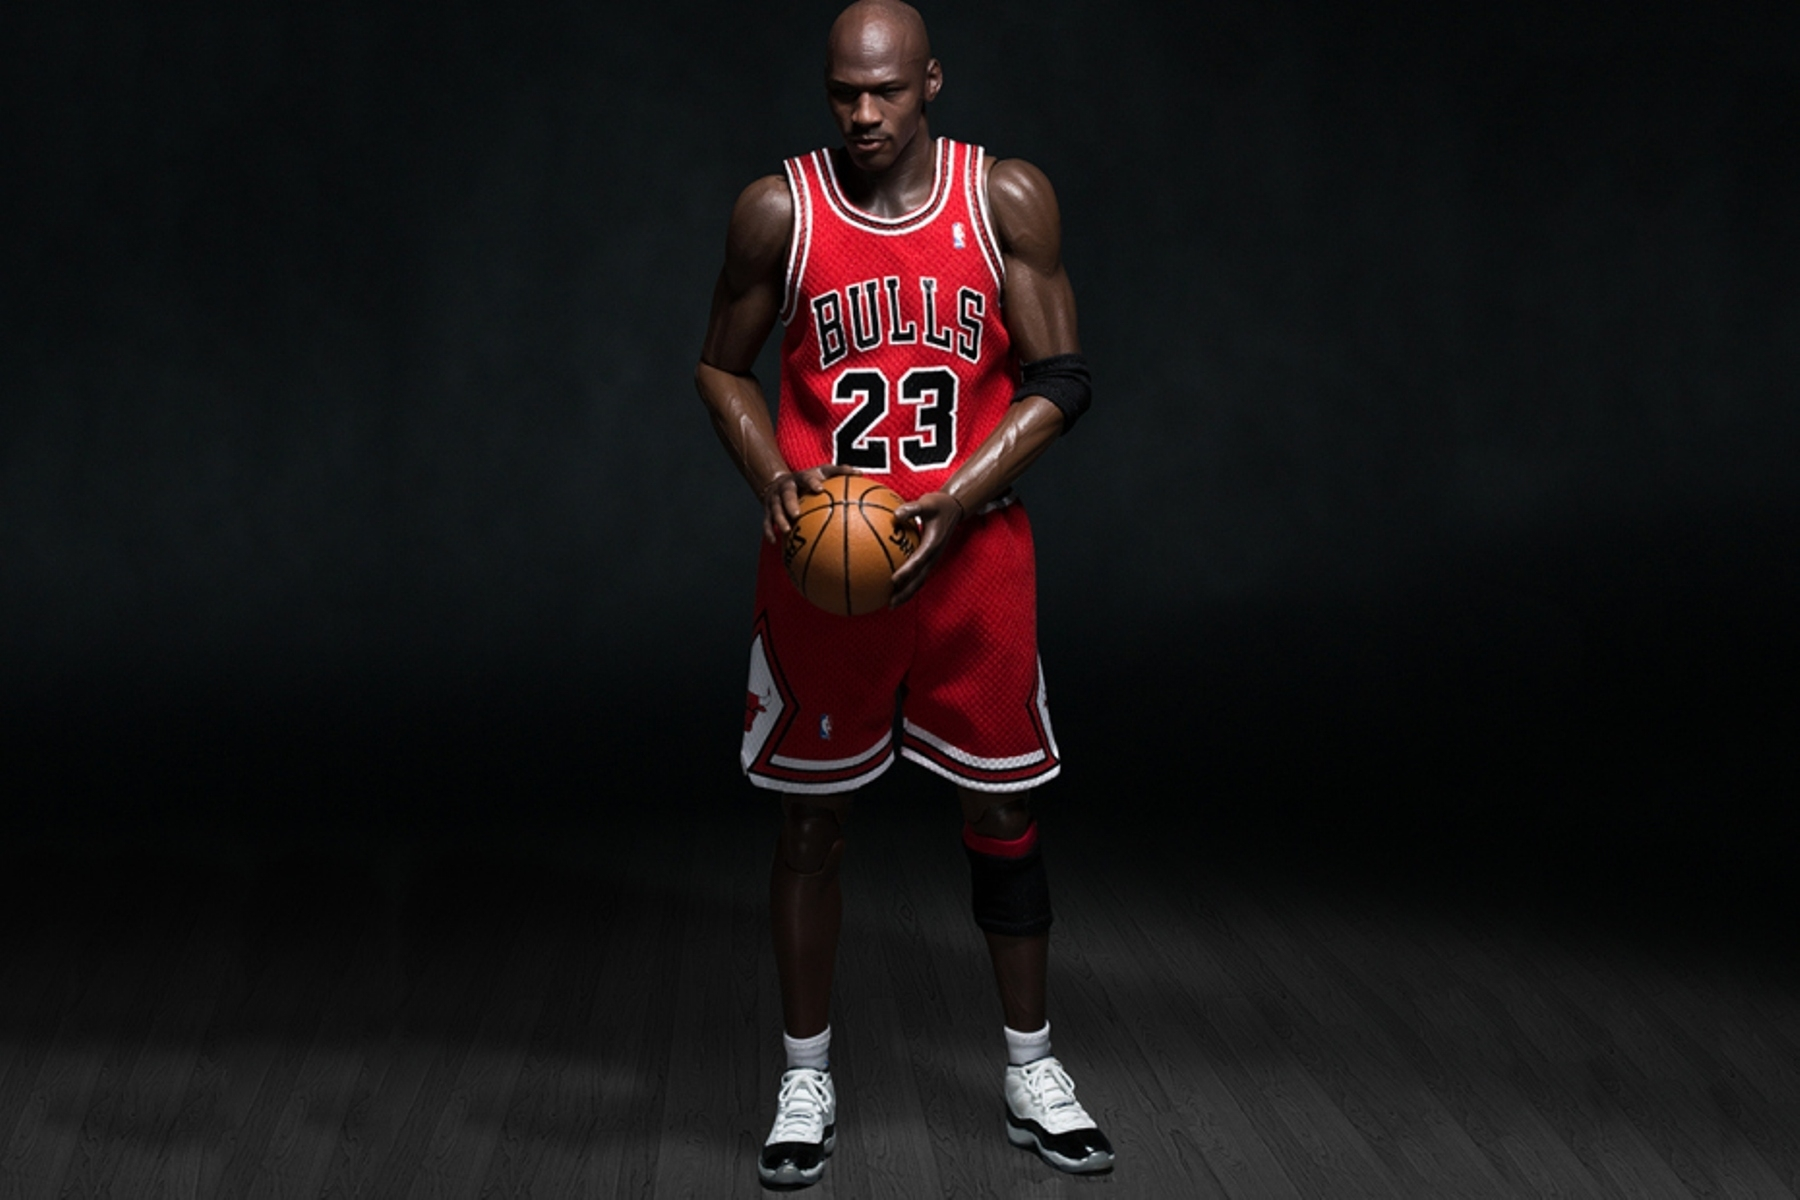 michael-jordan-images-hd - wallpaper.wiki